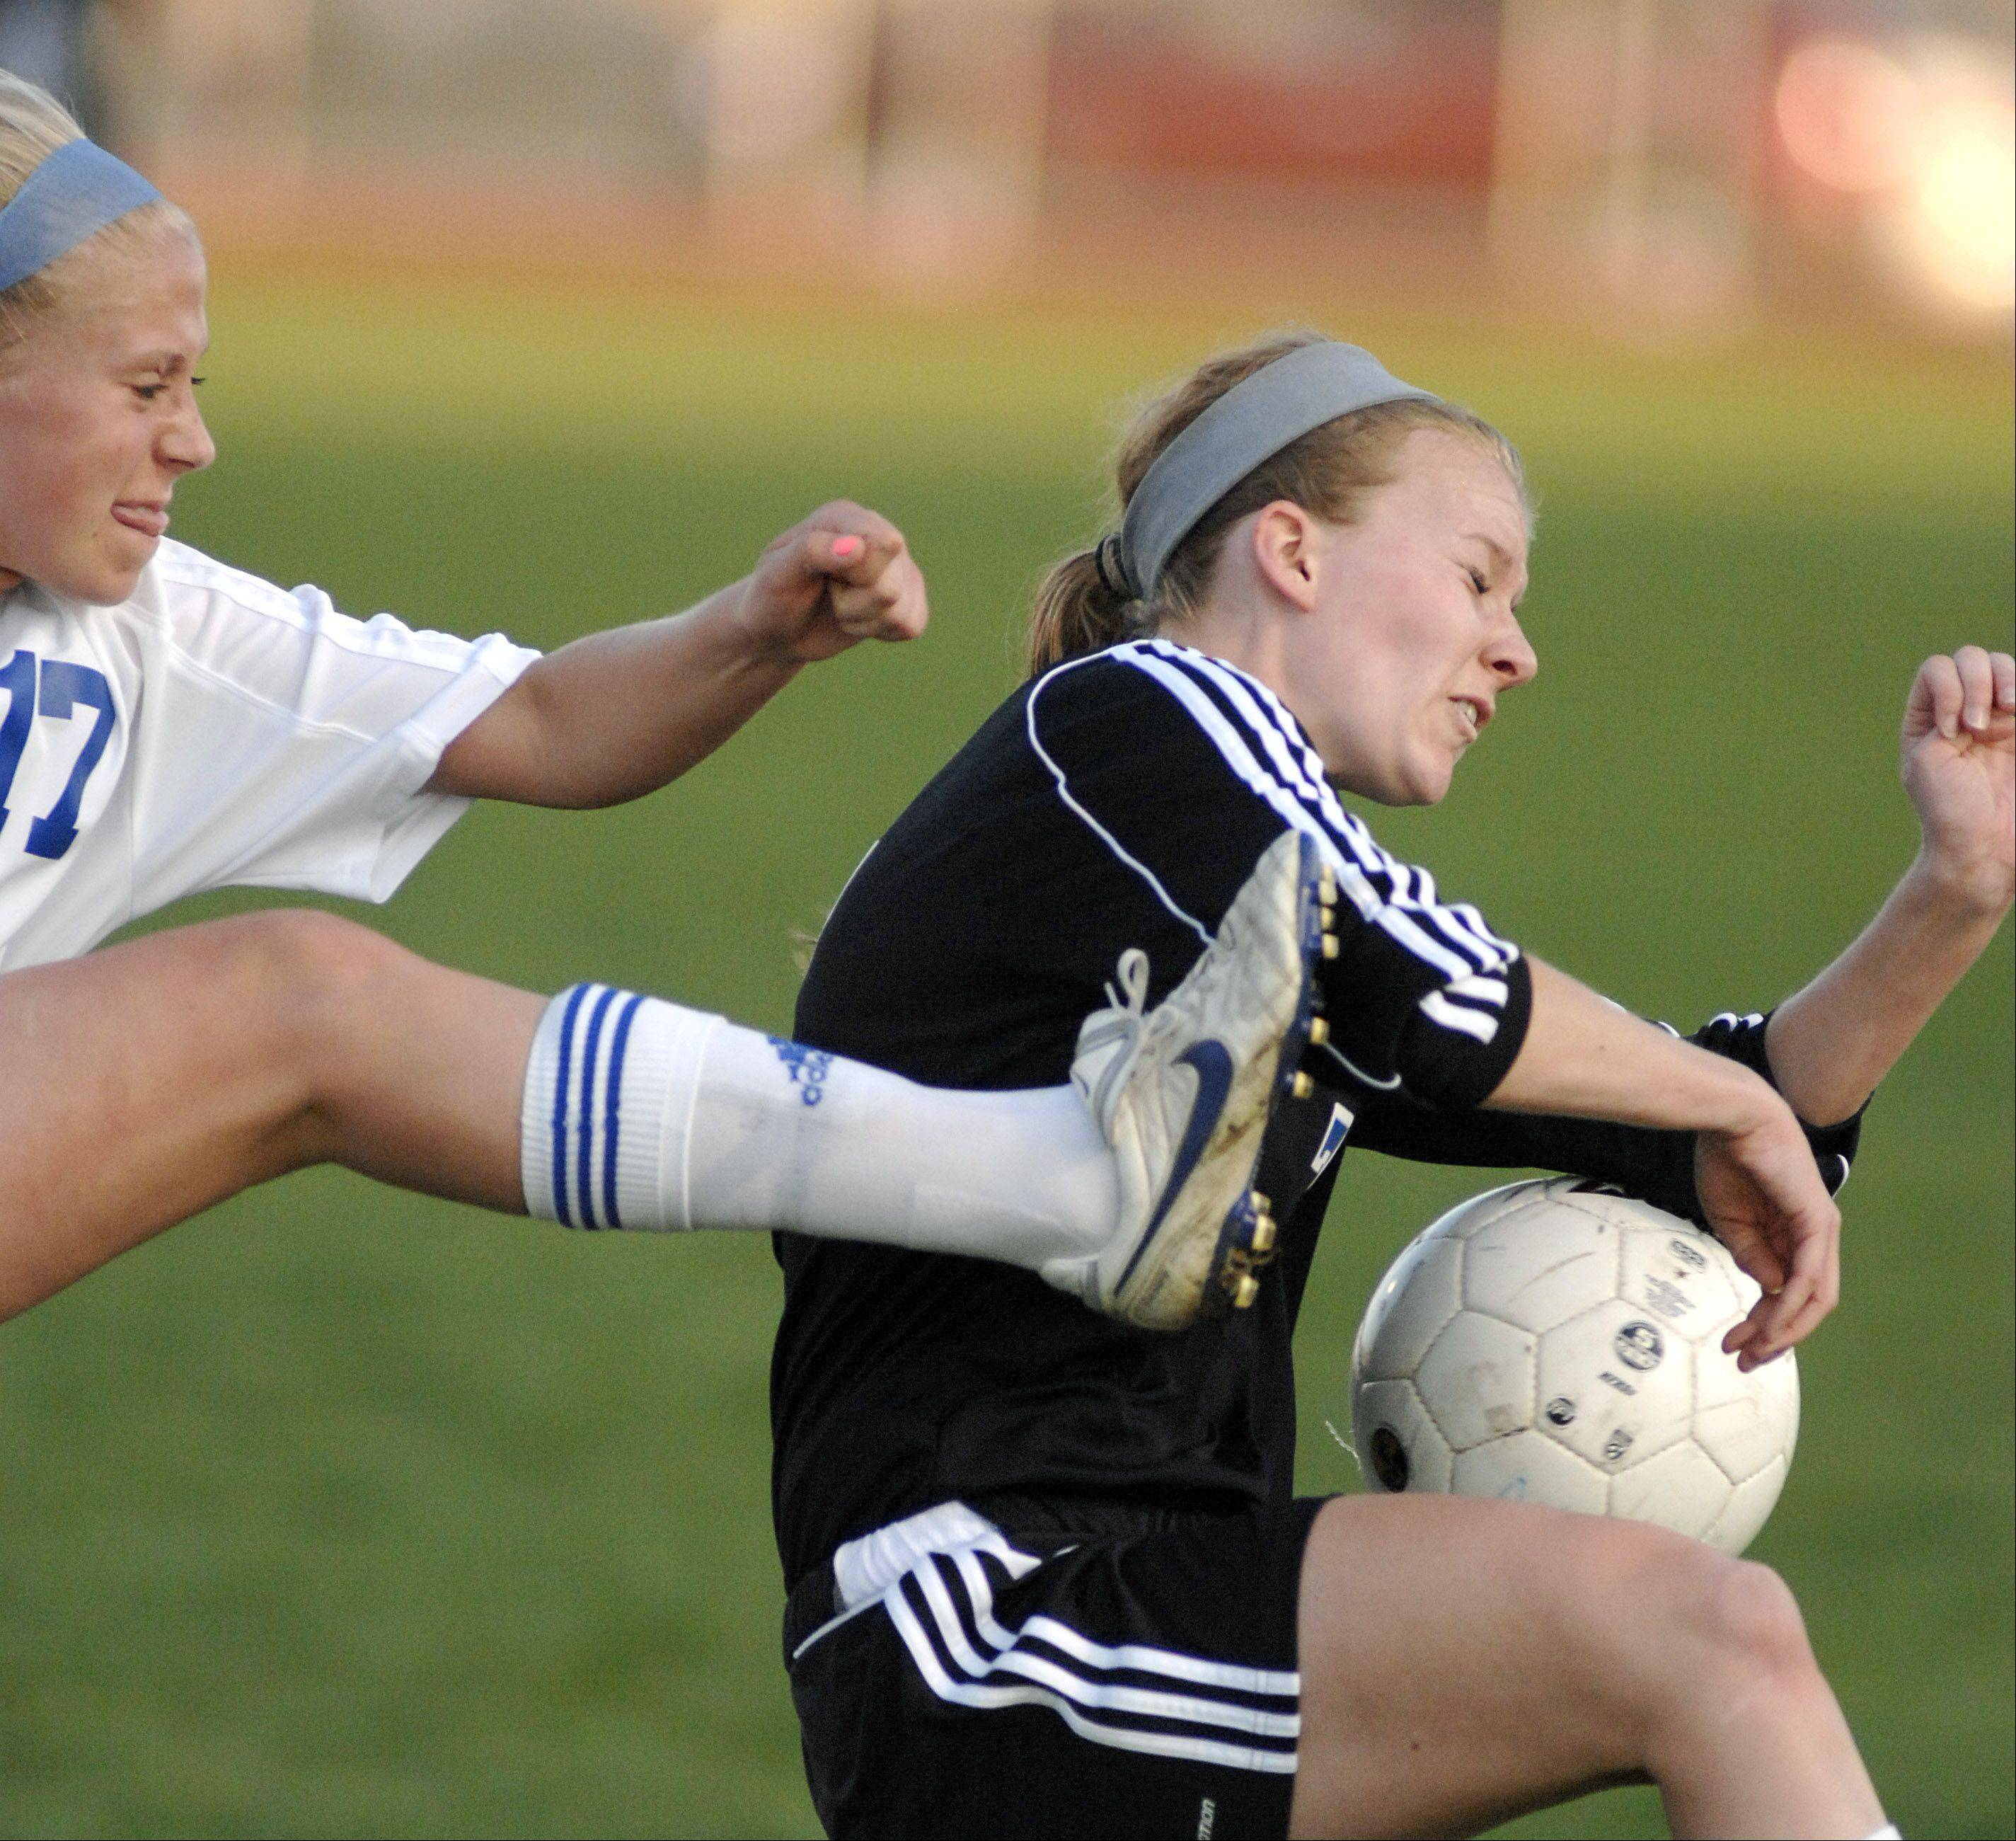 St. Charles North's Kelly Manski and Geneva's Hope Goodman fight for the ball in the first half on Tuesday.